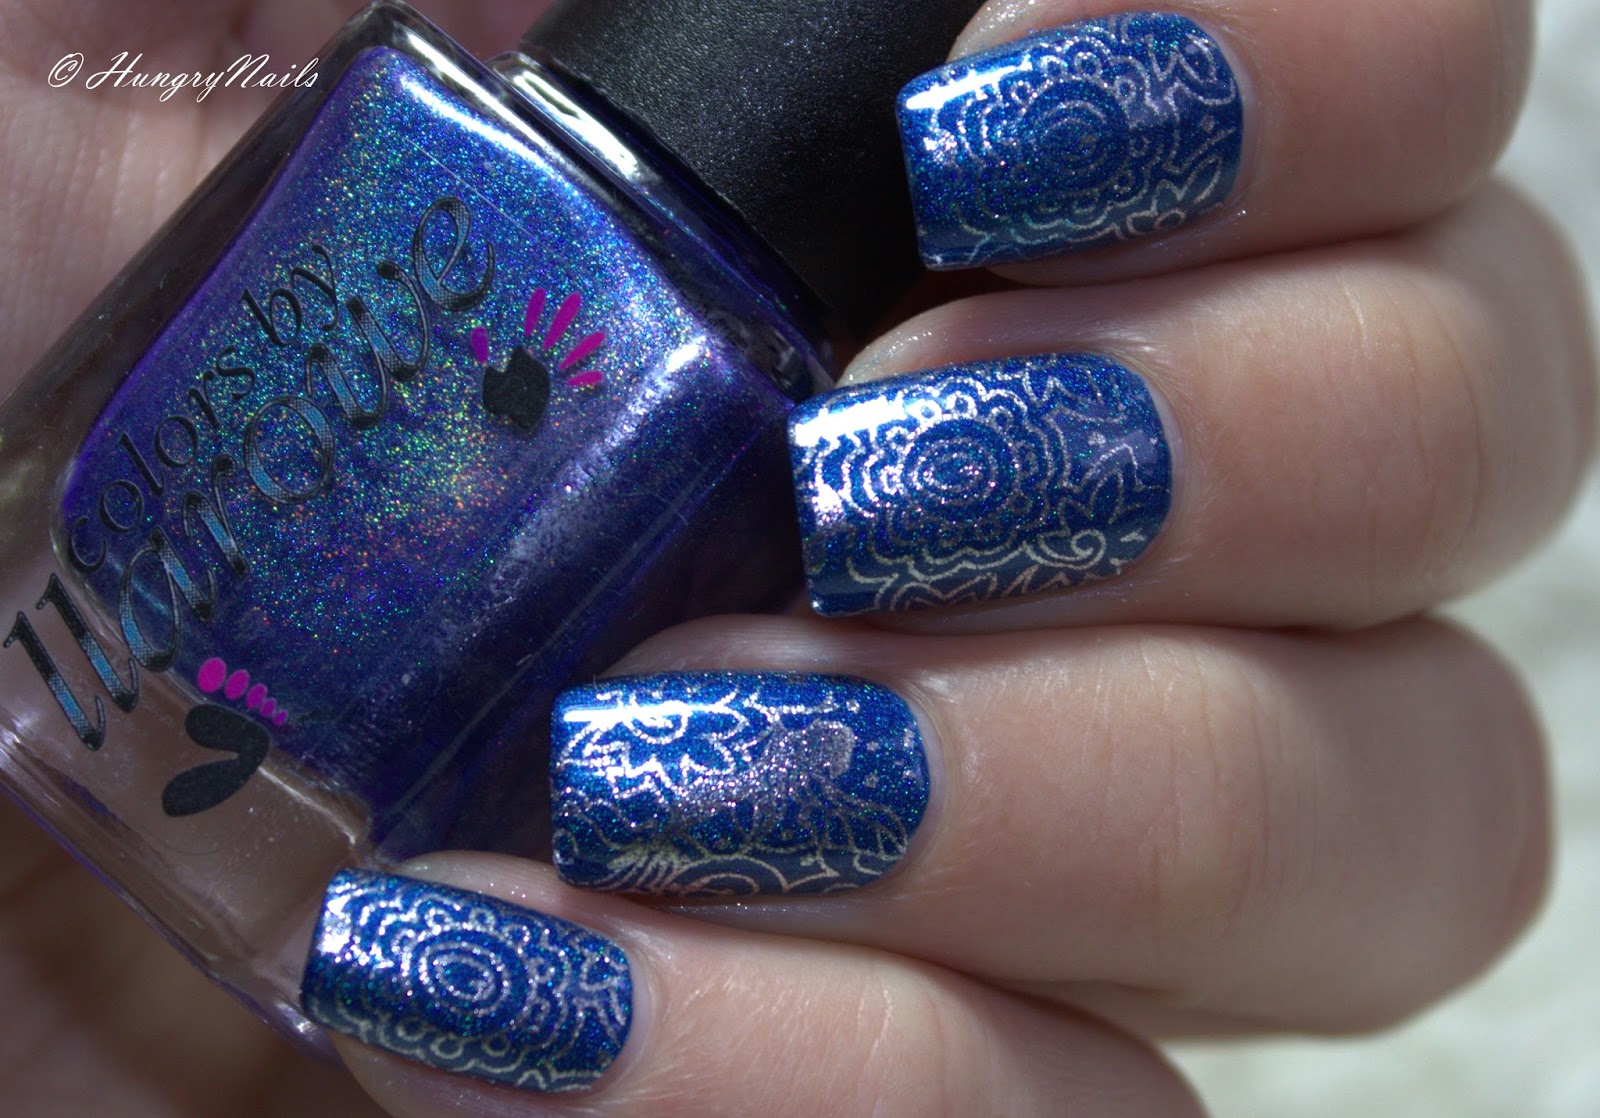 http://hungrynails.blogspot.de/2014/12/colorsbyllarowe-smokey-mountain-memories.html